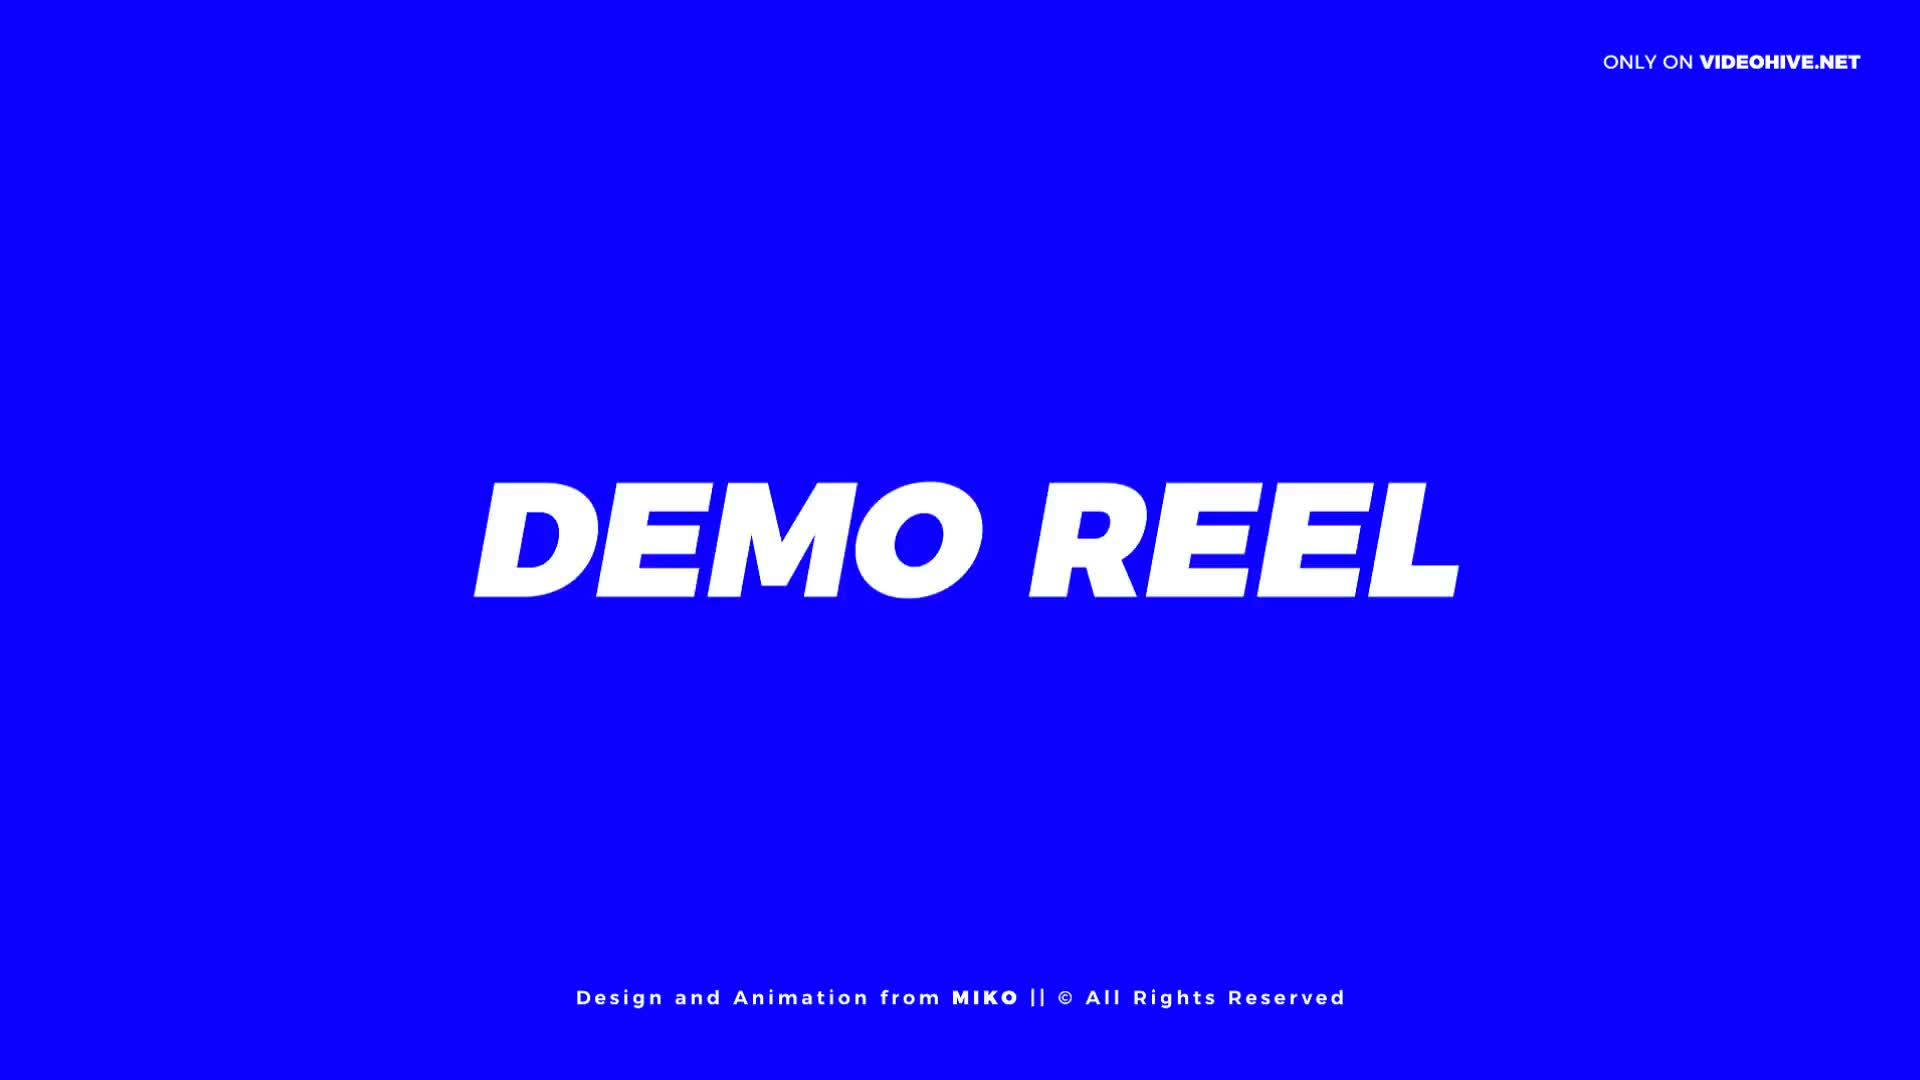 Demo Reel Promo Opener - Download Videohive 21167681